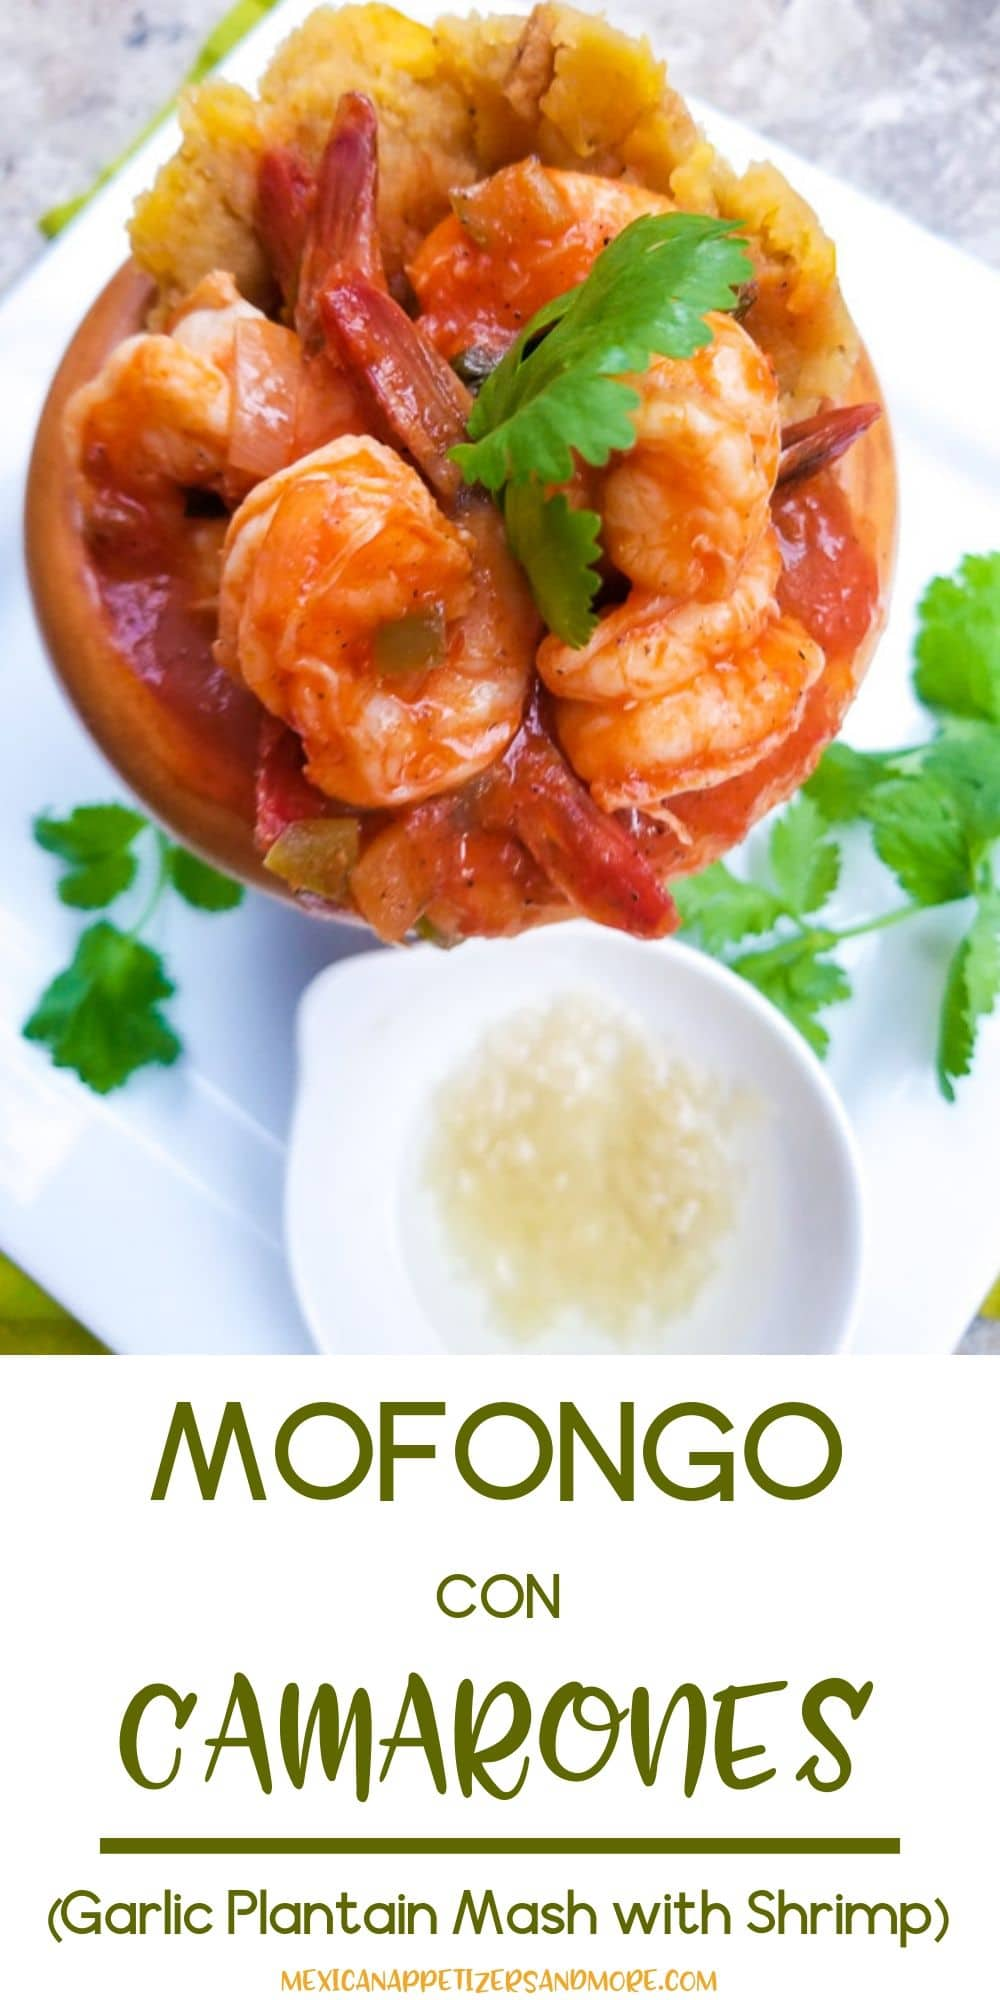 Mofongo con Camarones or Mofongo de Camarones (Mofongo with Shrimps) is a hyper delicious Puerto Rican dish made with a garlic plantain mash and served with shrimps in a salsa criolla sauce. One of the best dishes you will ever have! #mexicanappetizersandmore #mofongo #mofongorecipe #mofongopuertorican #mofongorecipepuertorican #mofongodecamaron #mofongowithshrimp #mofongocriollo